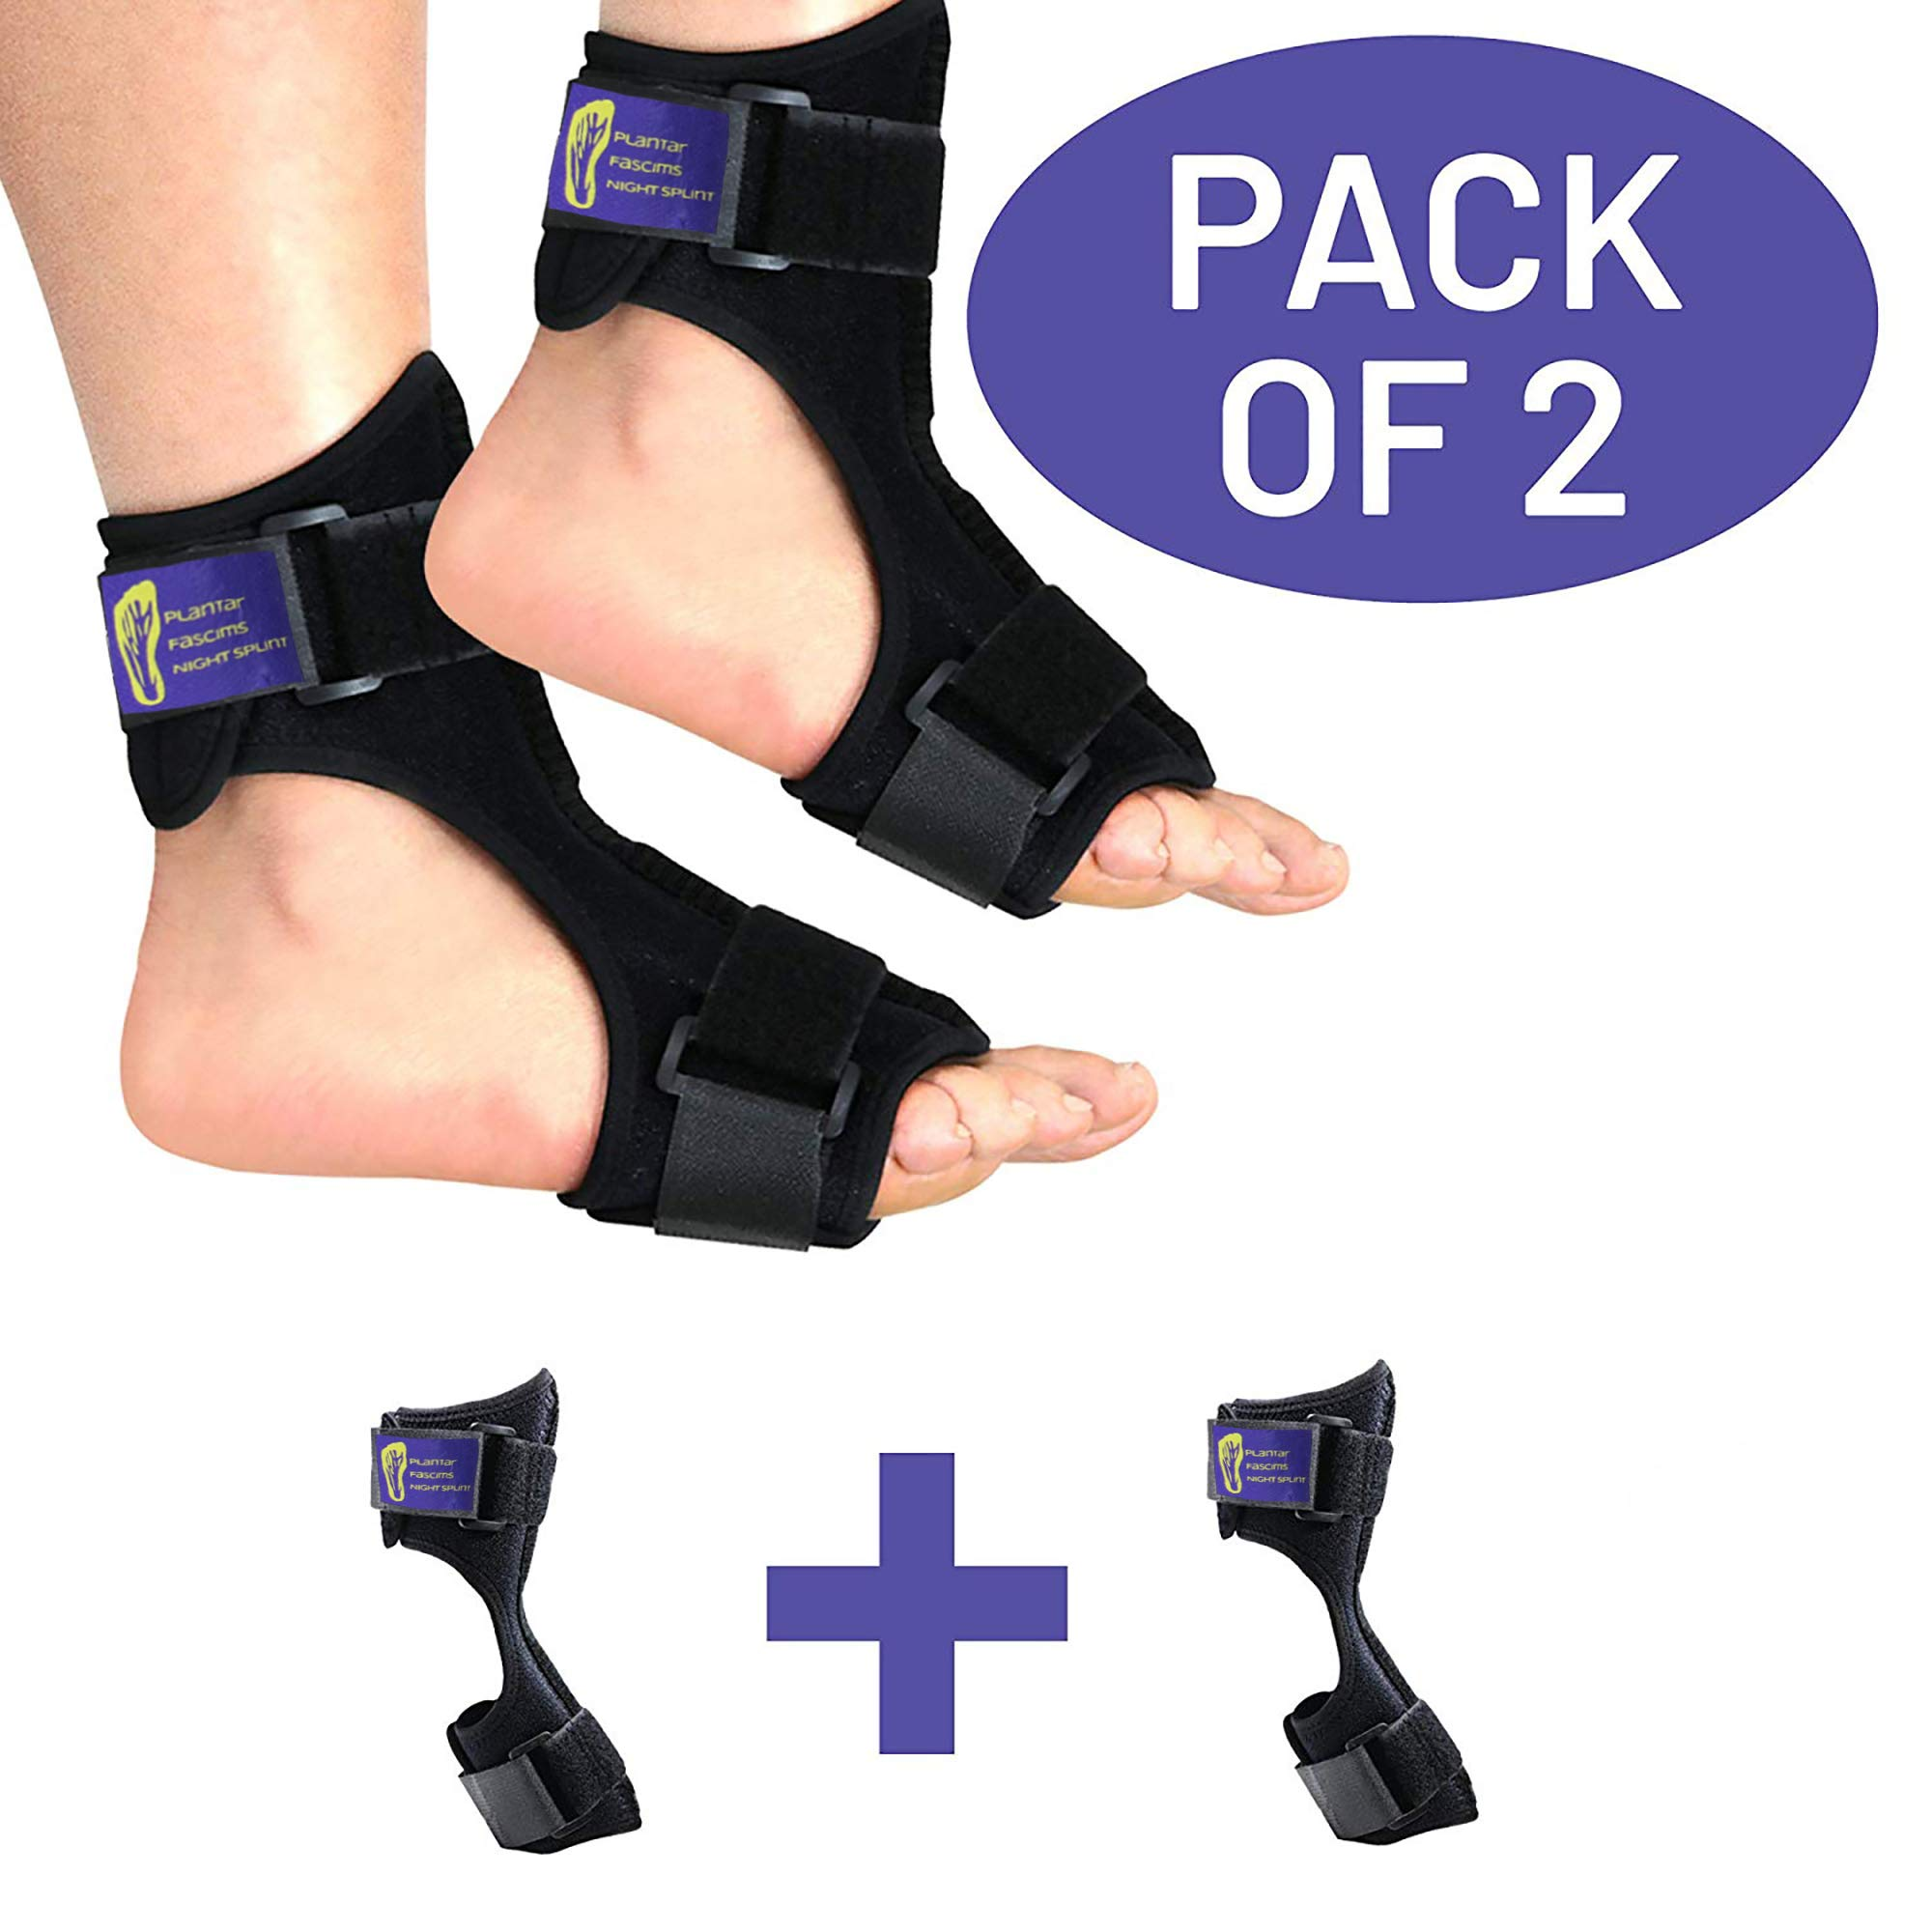 Pack of 2 - Everyday Medical - Plantar Fasciitis Night Splints for Both Feet - Plantar Fascia Pain Relief Sock- Stretching Support Boot Best for Achilles Tendonitis, Heel, Arch Foot Pain - L/XL by Everyday Medical